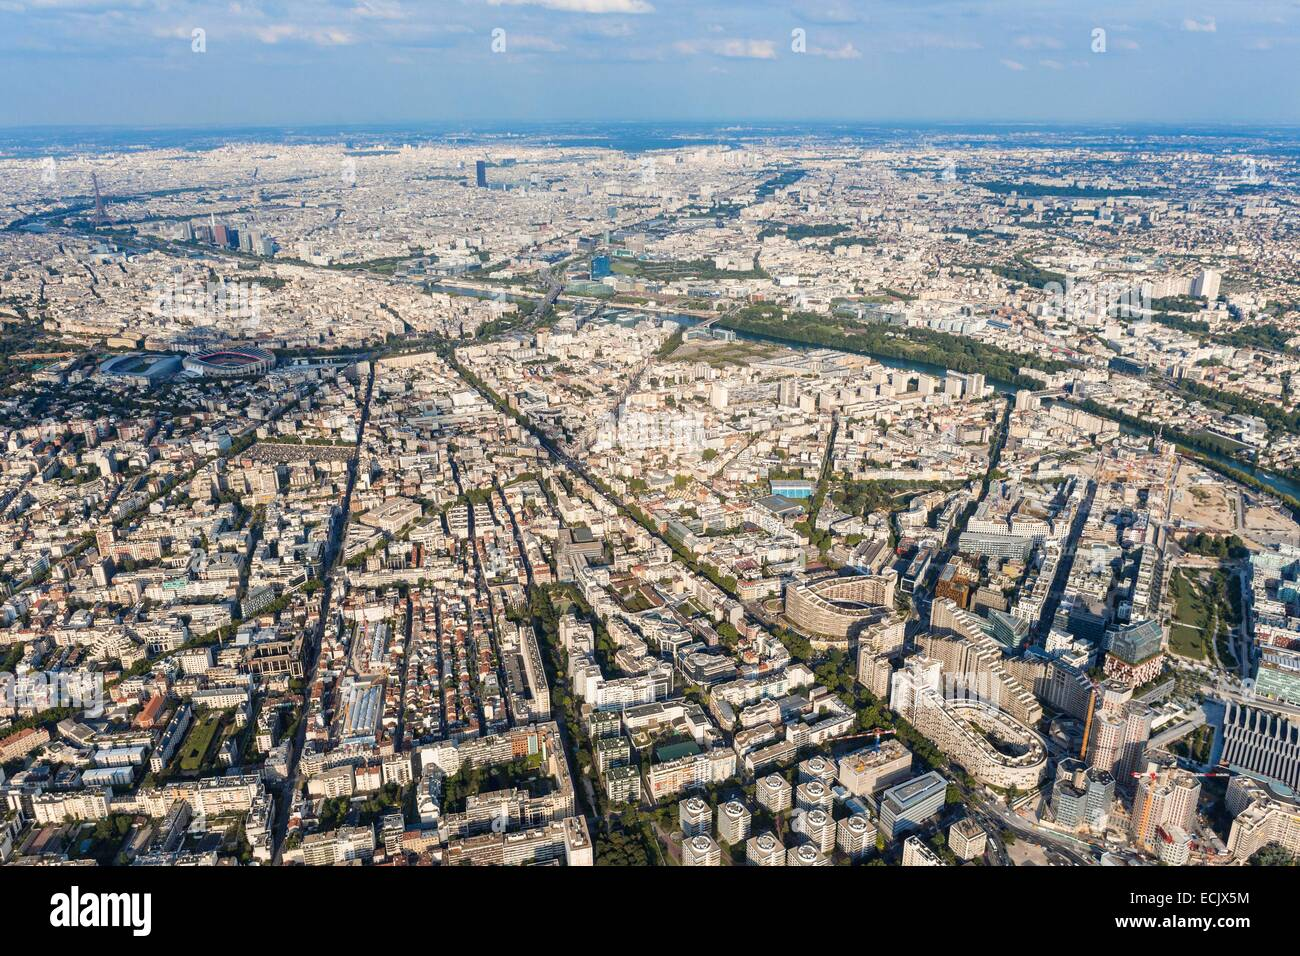 France, Paris, general view with the southbound district (aerial view) - Stock Image